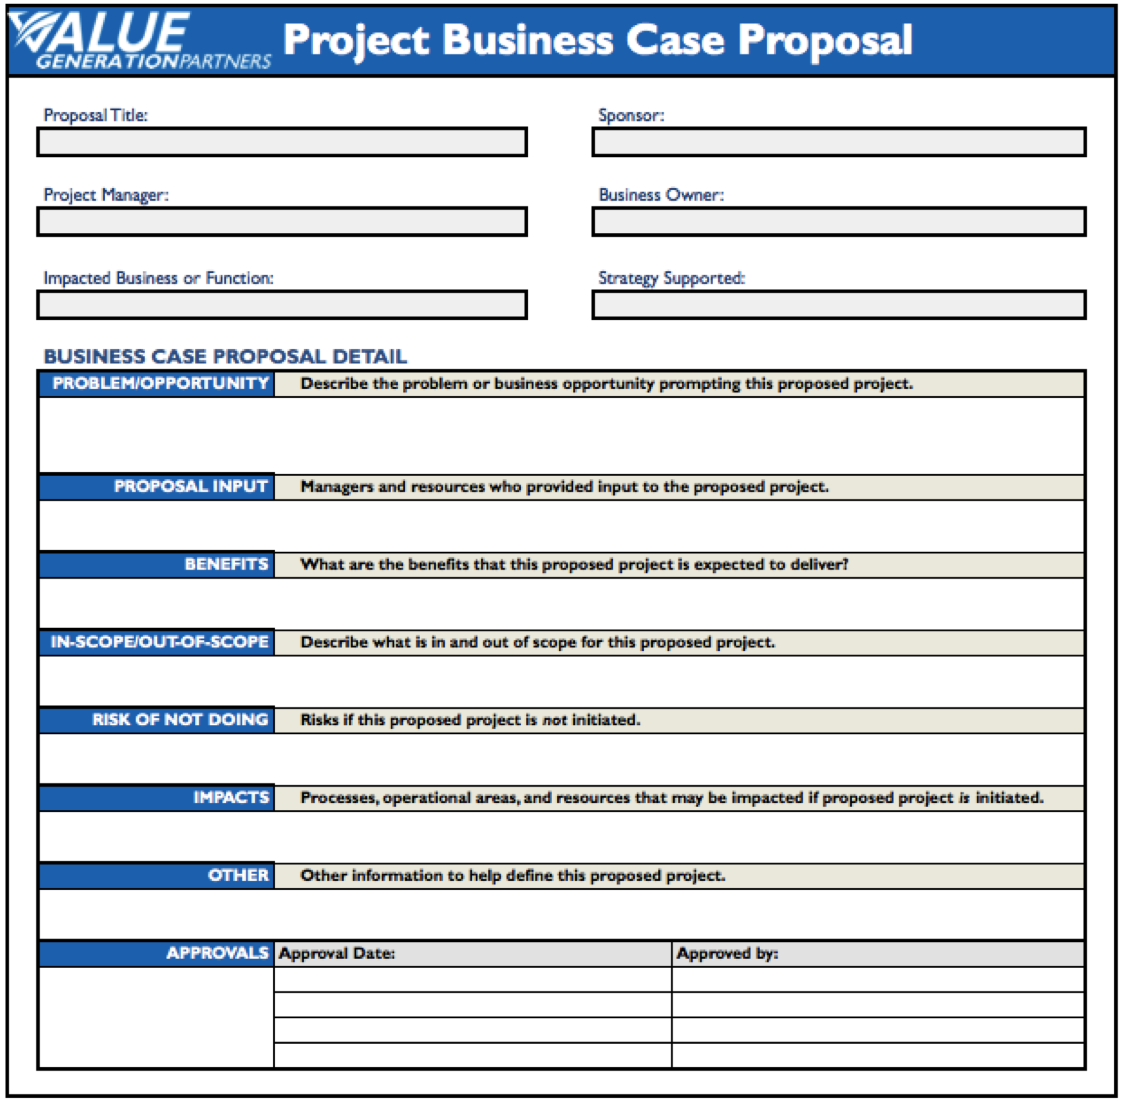 Regardless of your project business case proposal template format regardless of your project business case proposal template format wdtpcn00 cheaphphosting